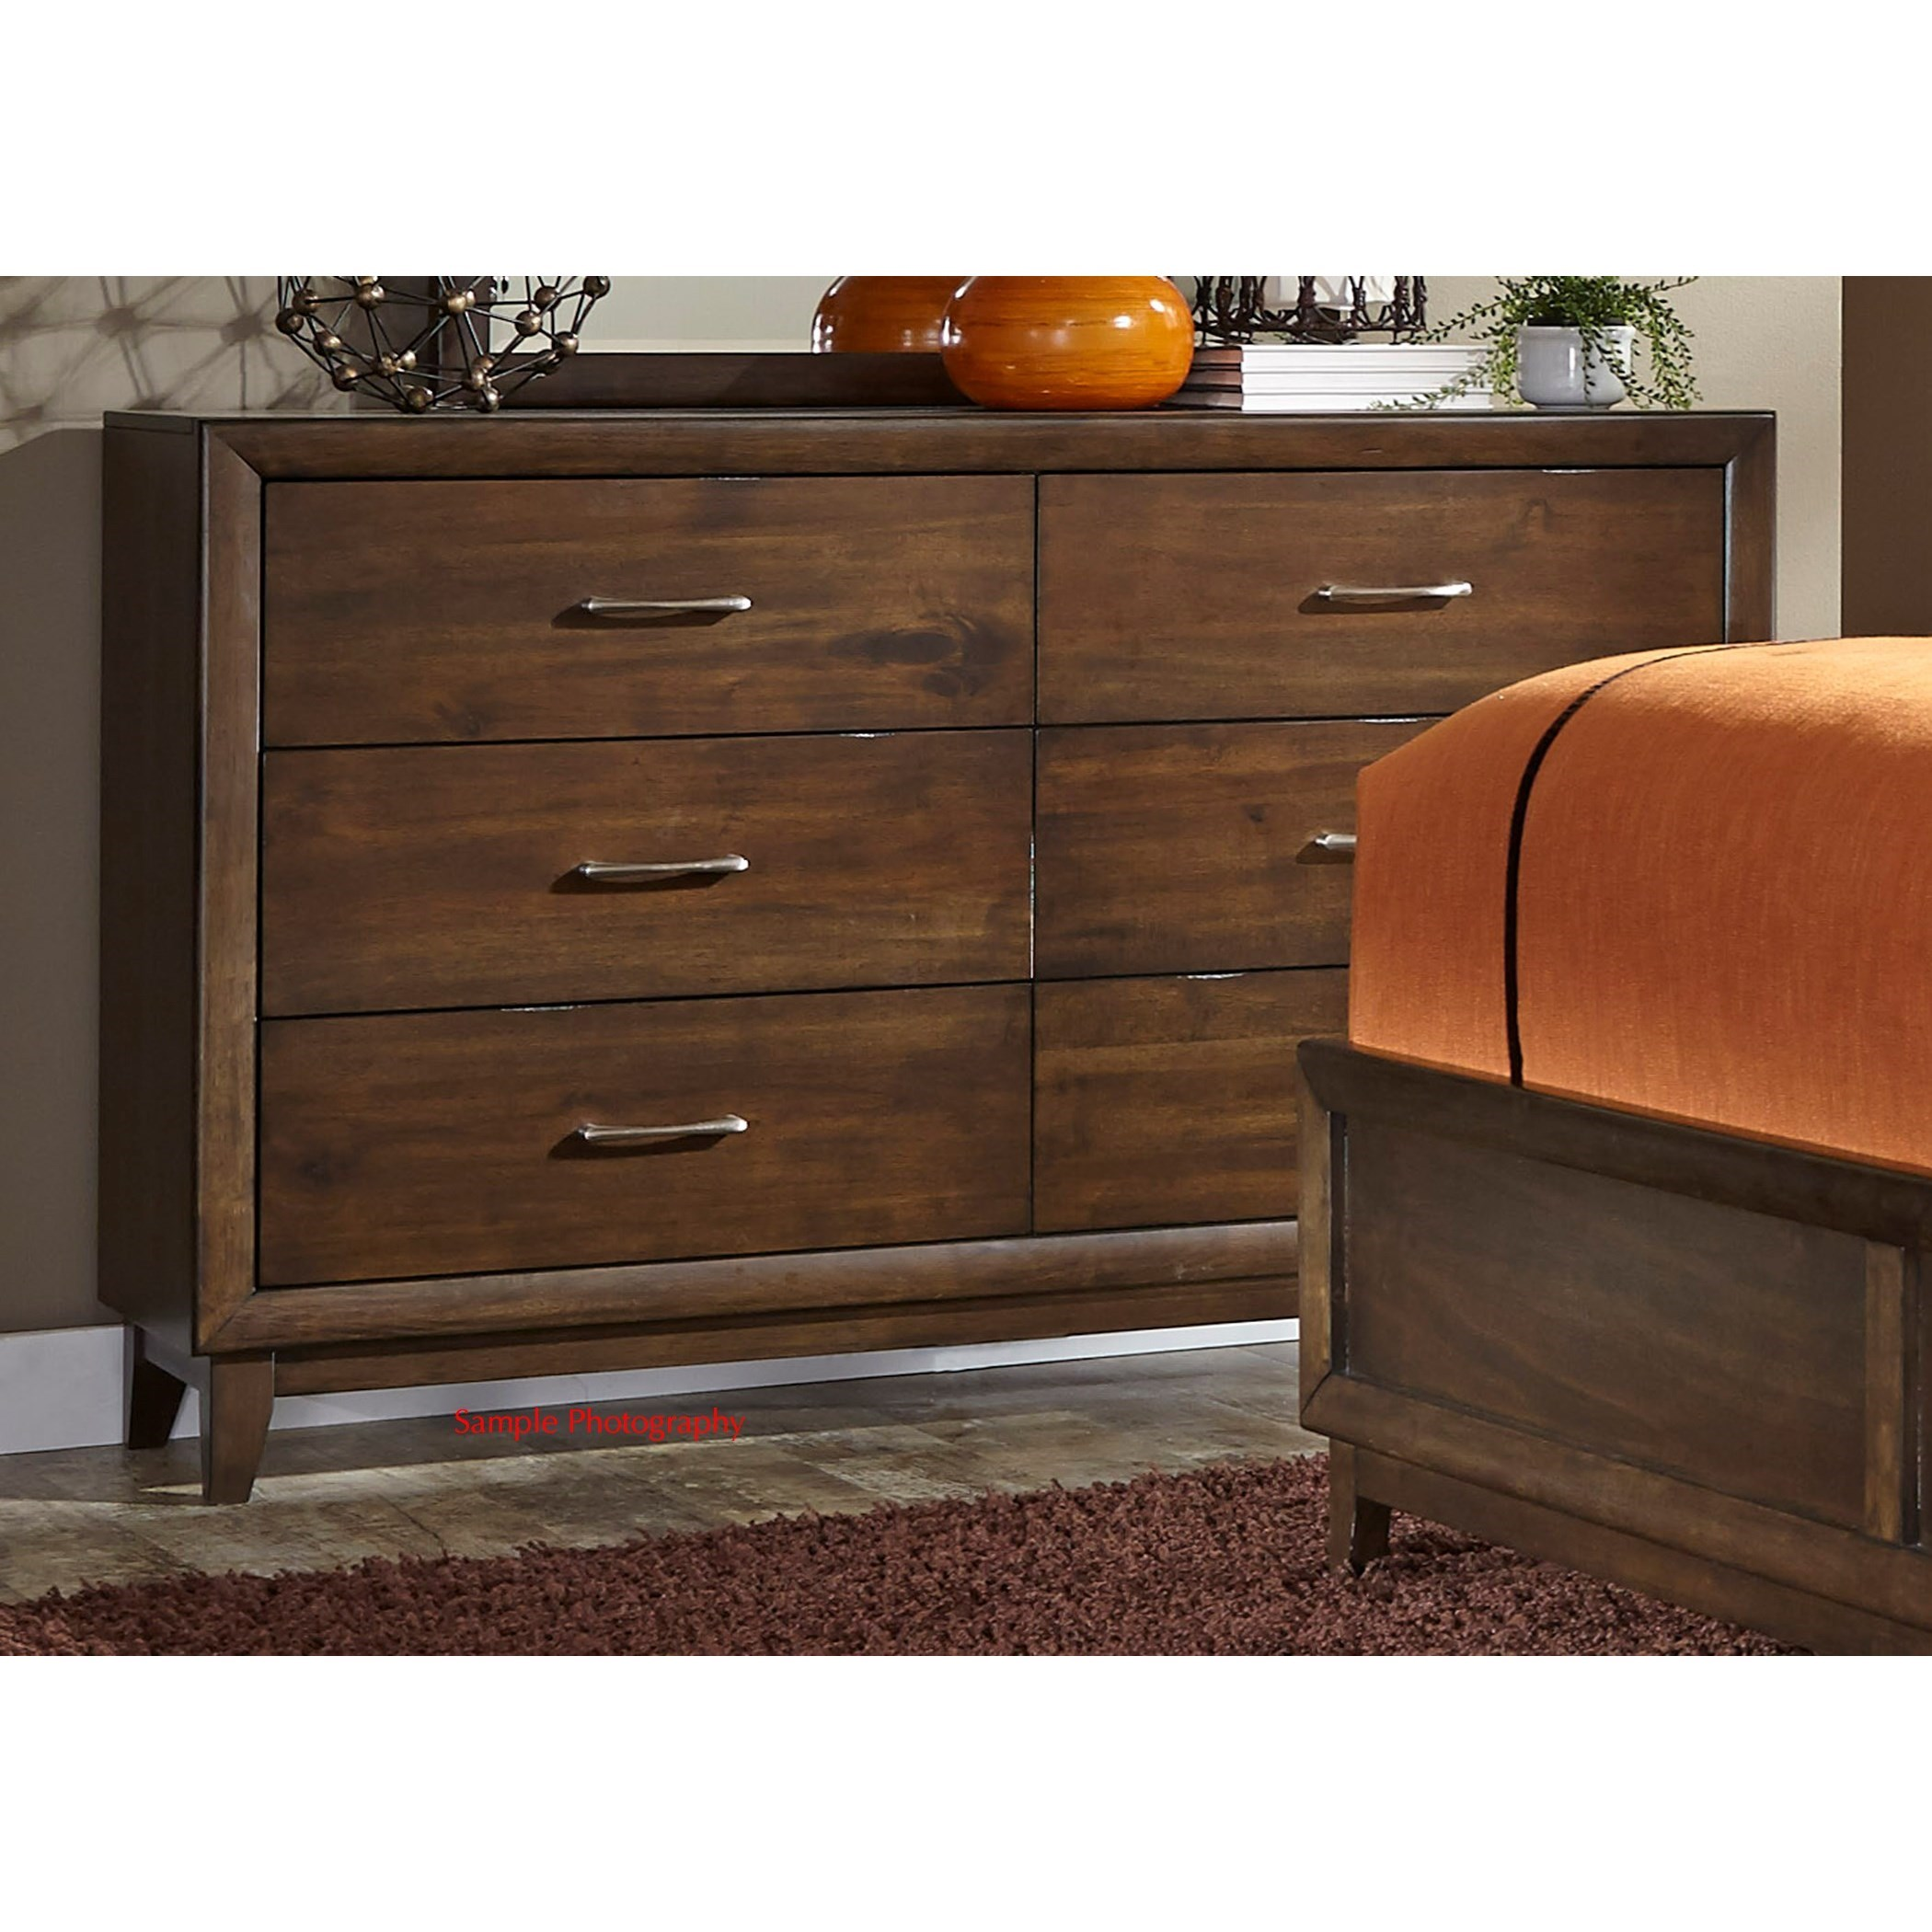 Liberty furniture hudson square bedroom 365 br31 6 drawer for Furniture 365 direct